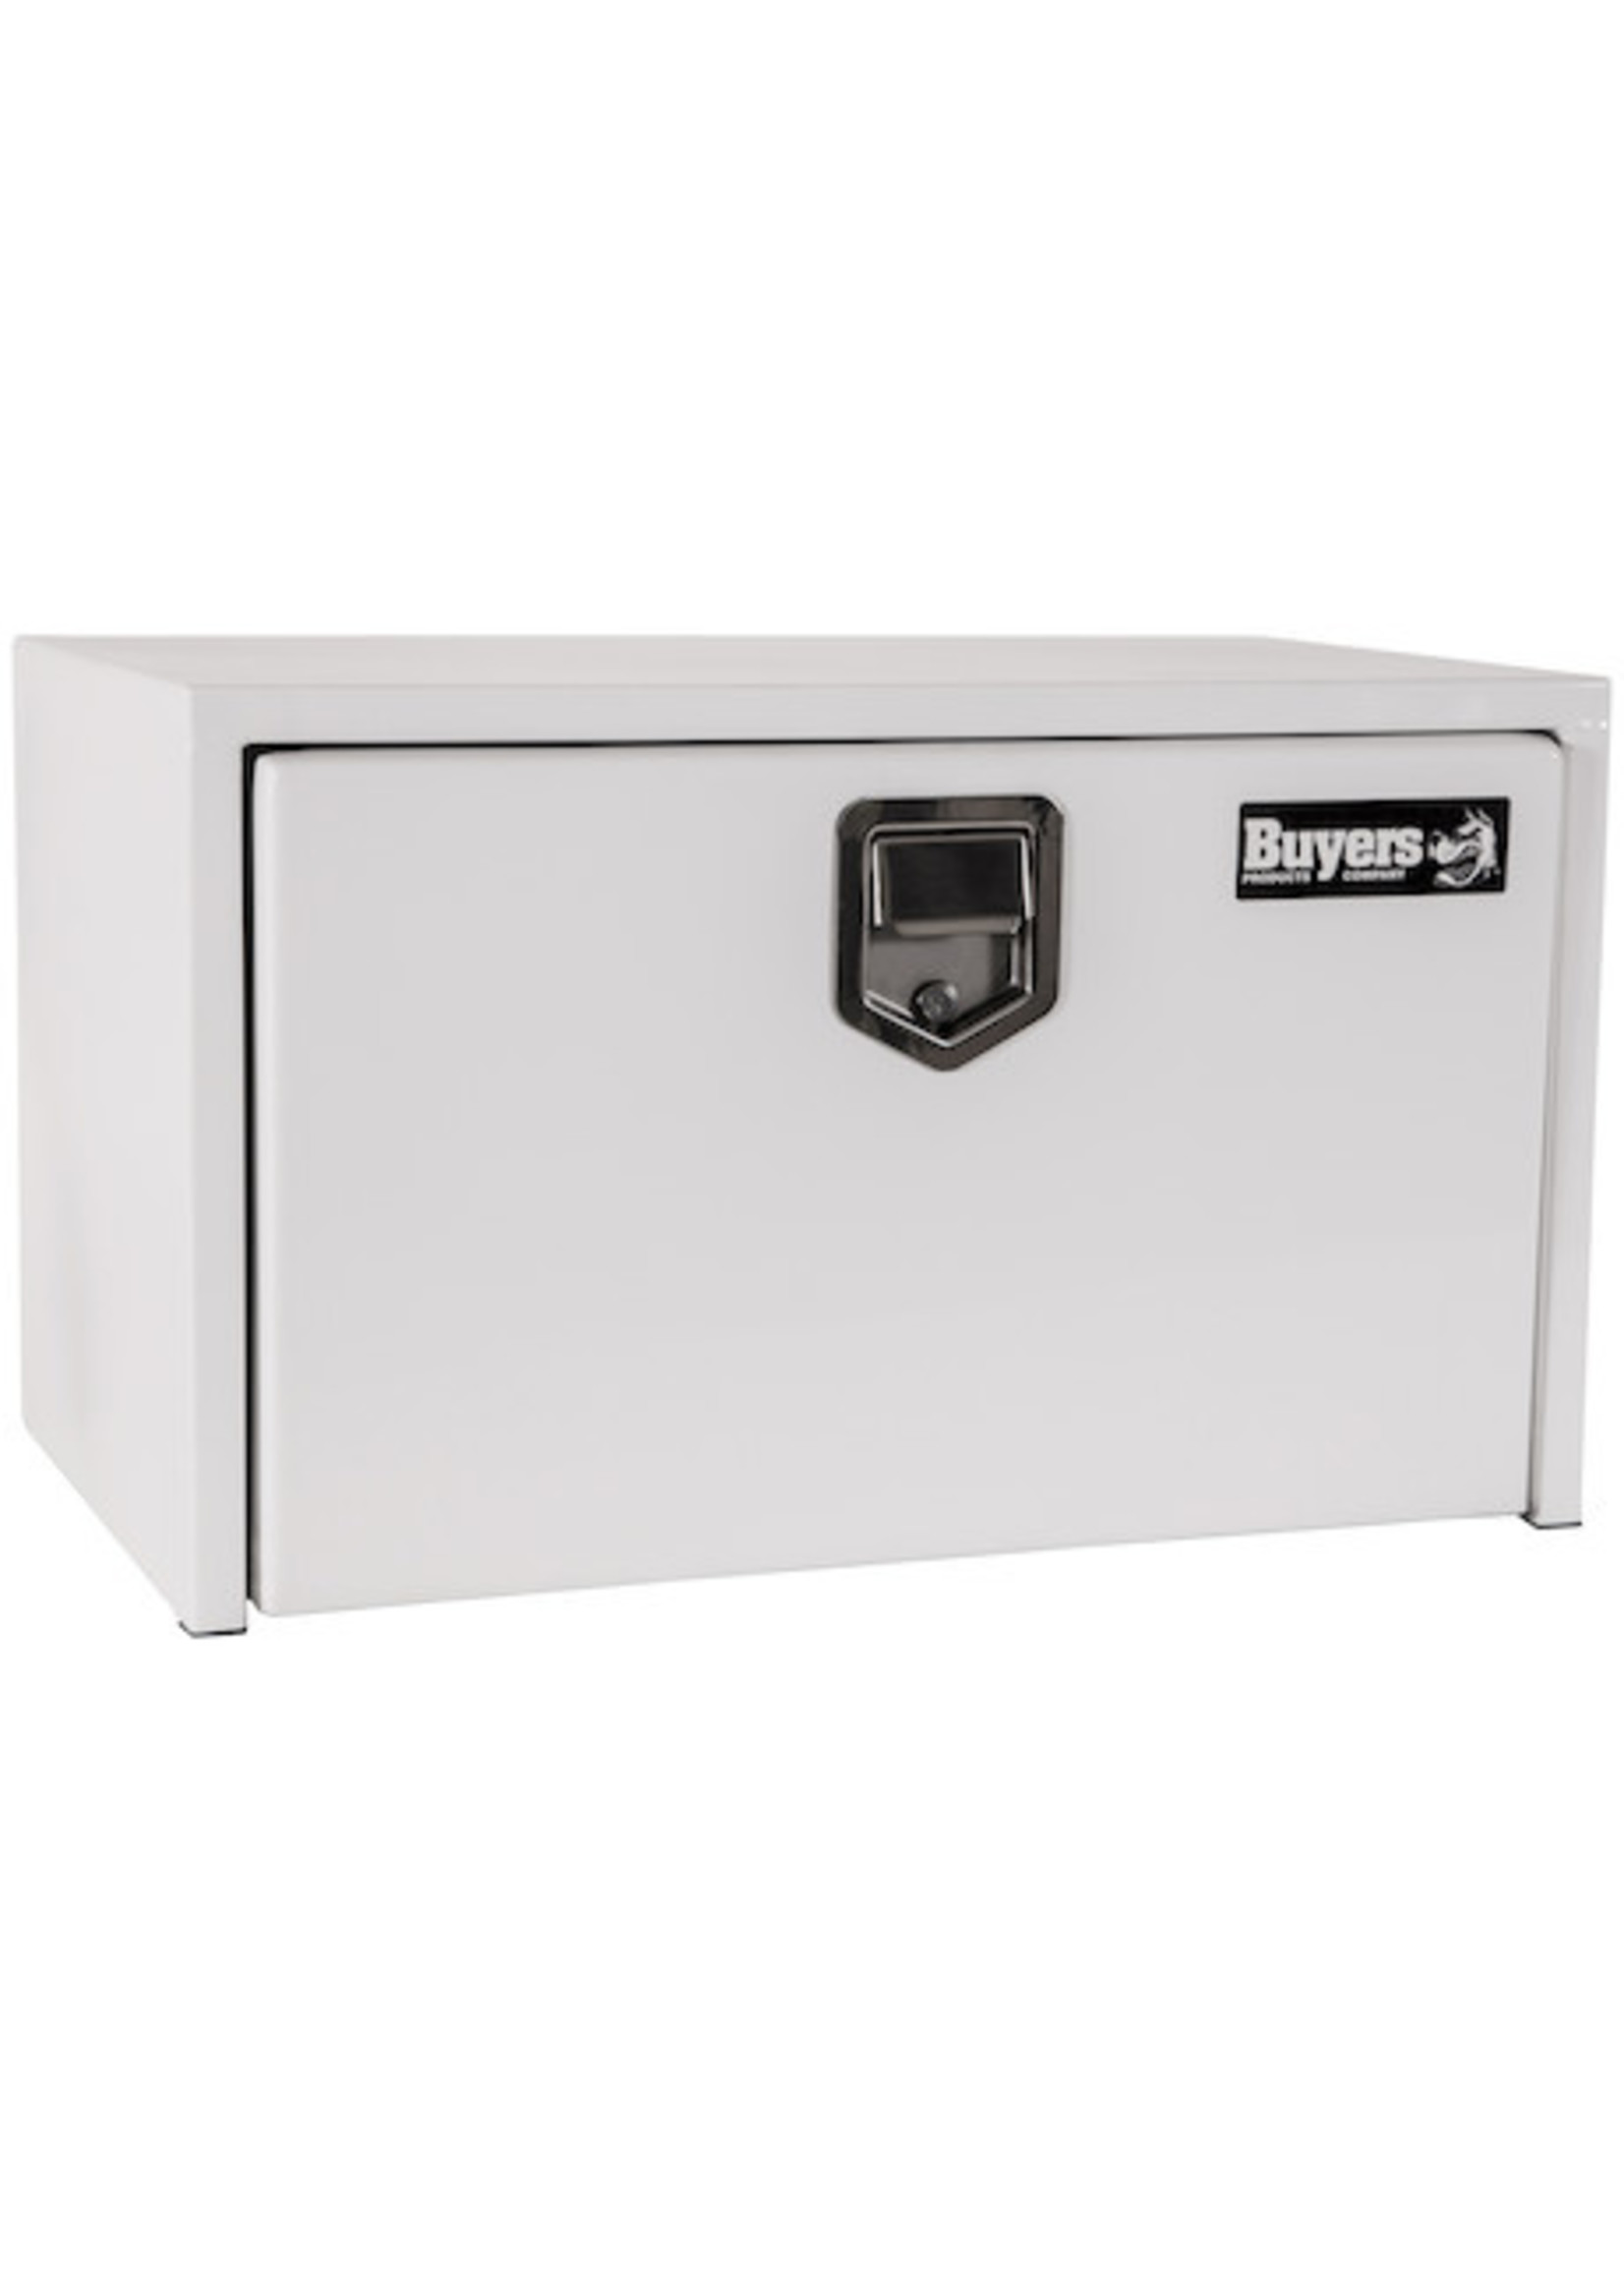 Buyers Products Company White Steel Underbody Truck Box with Paddle Latch Series